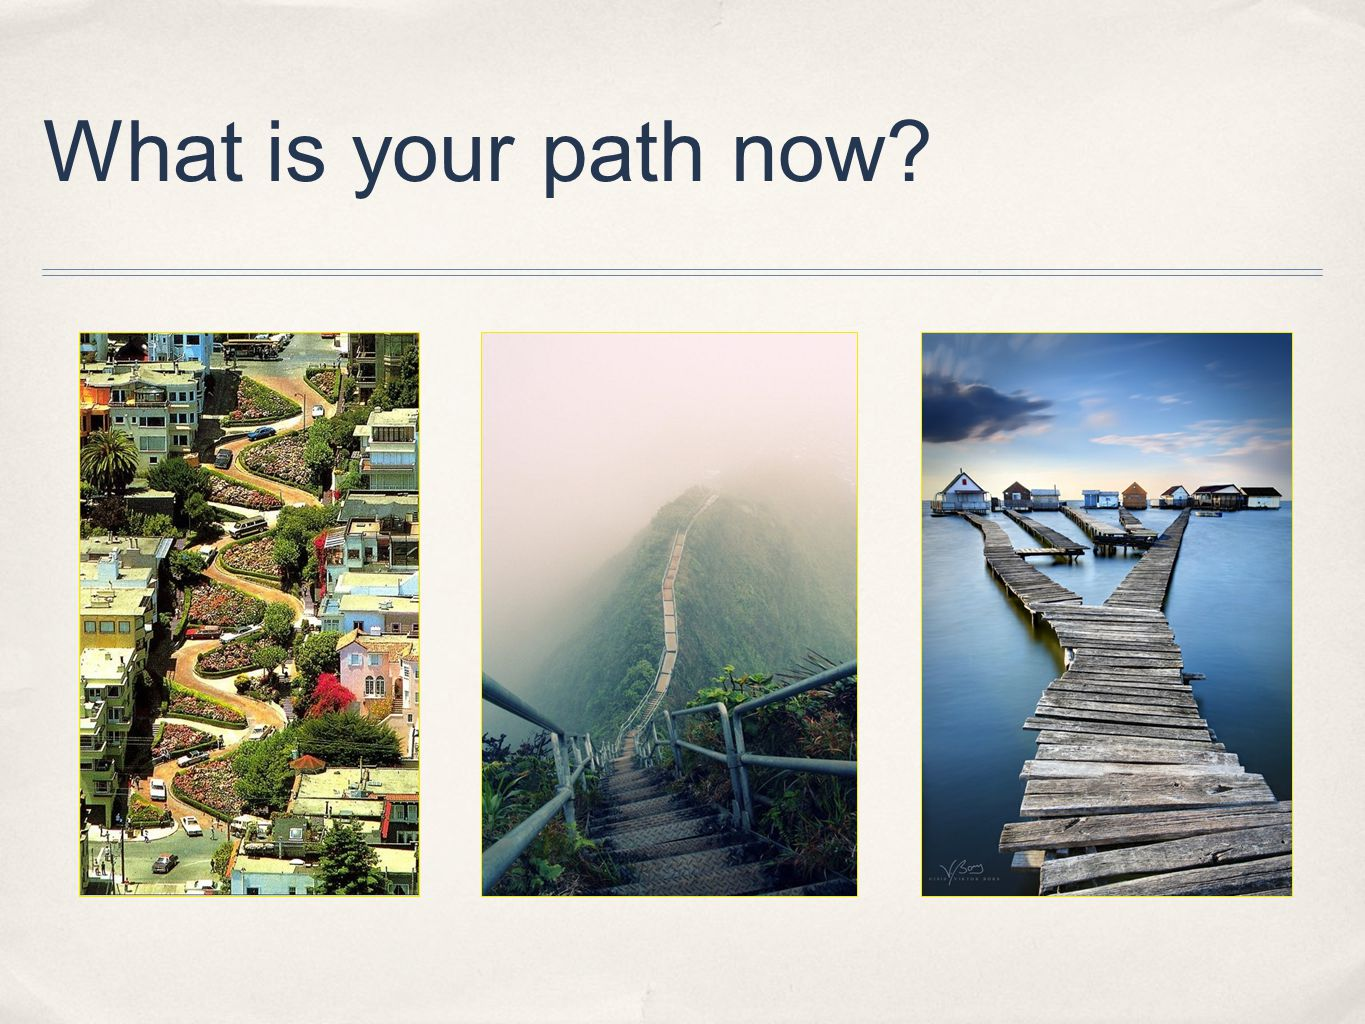 What is your path now